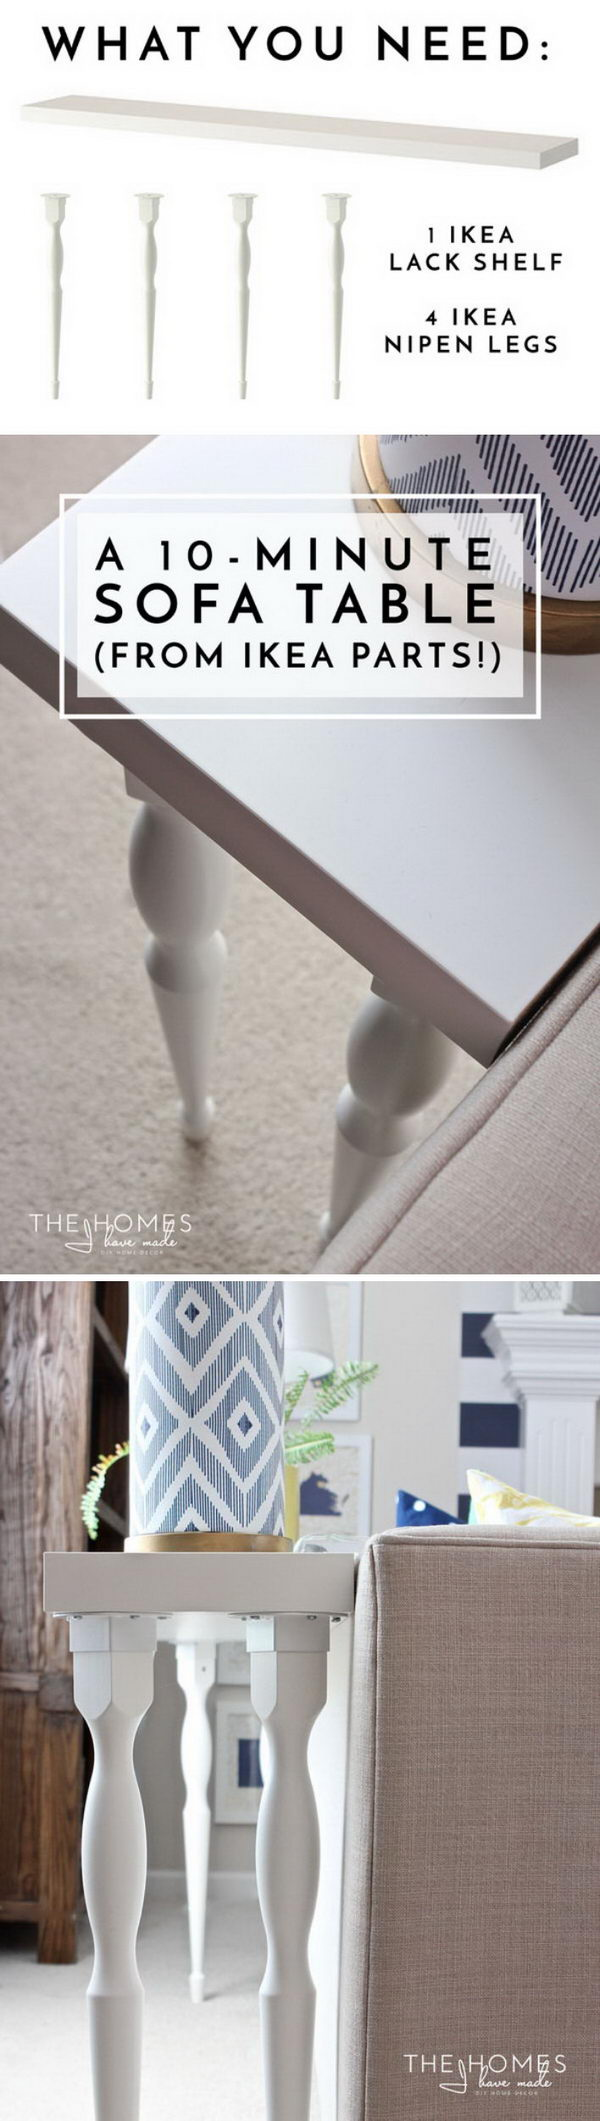 DIY Sofa Table Using Ikea Parts